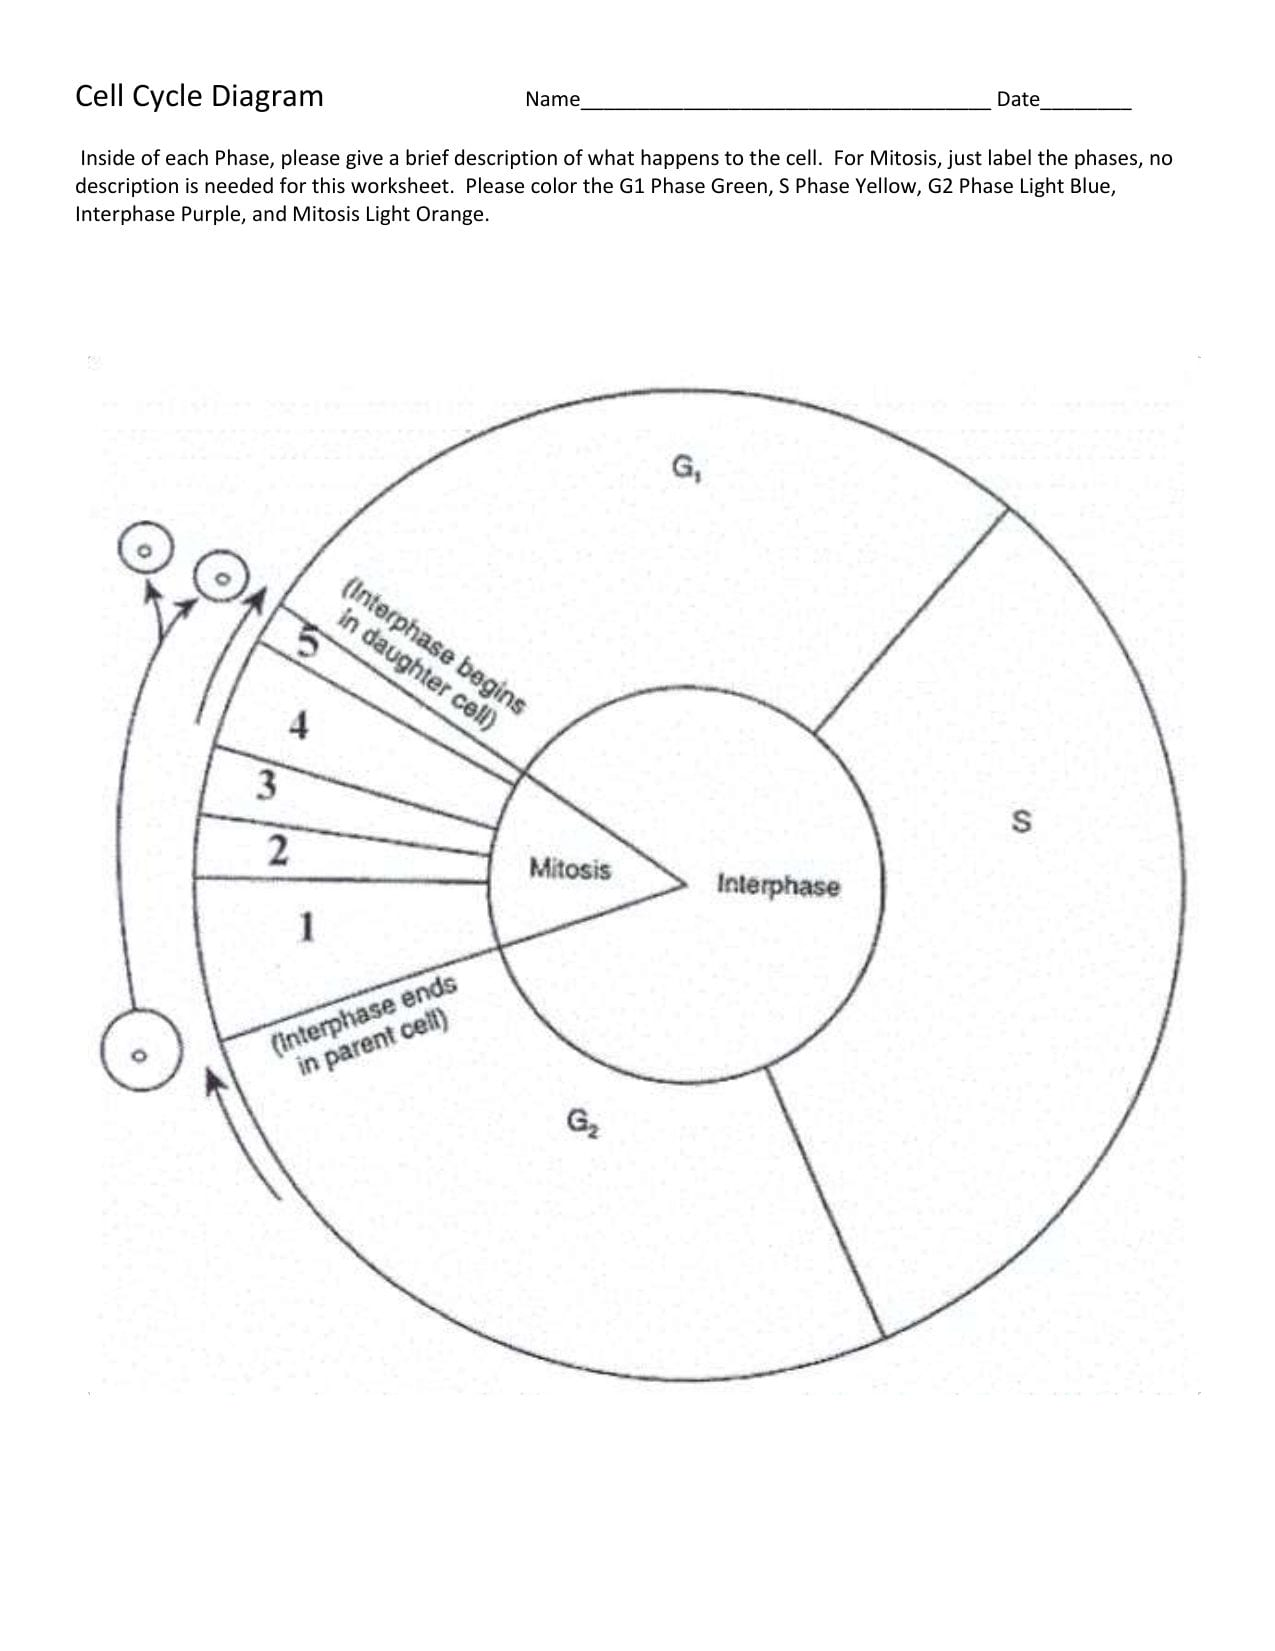 Cell Cycle Diagram Also Cell Cycle Labeling Worksheet